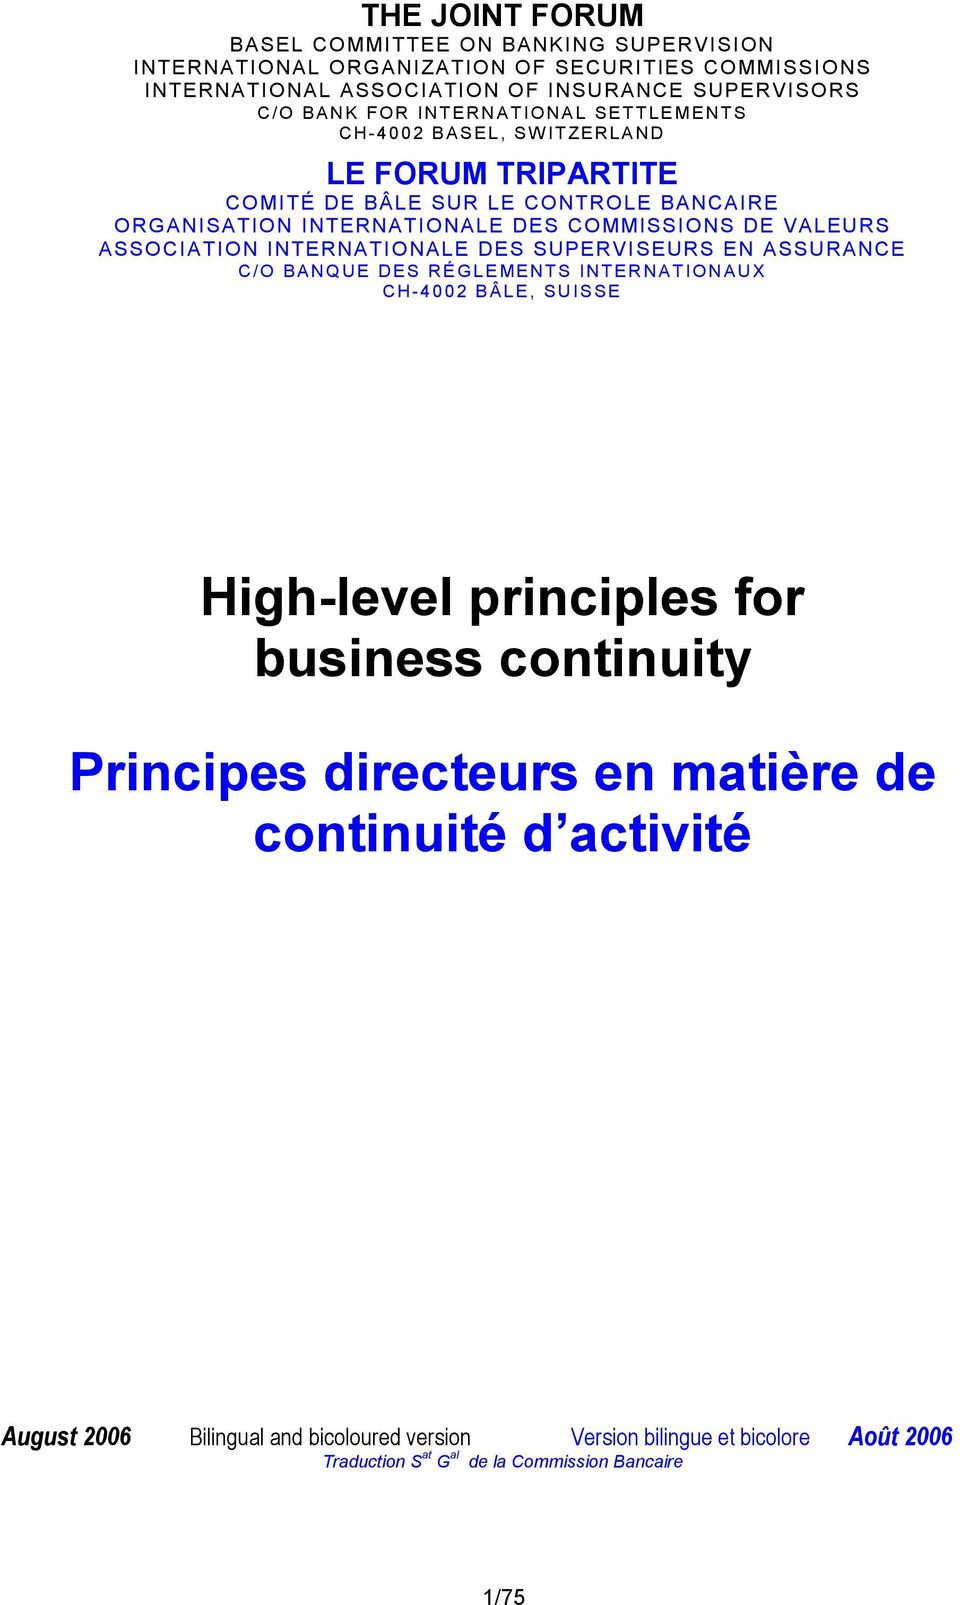 ASSOCIATION INTERNATIONALE DES SUPERVISEURS EN ASSURANCE C/O BANQUE DES RÉGLEMENTS INTERNATIONAUX CH-4002 BÂLE, SUISSE High-level principles for business continuity Principes